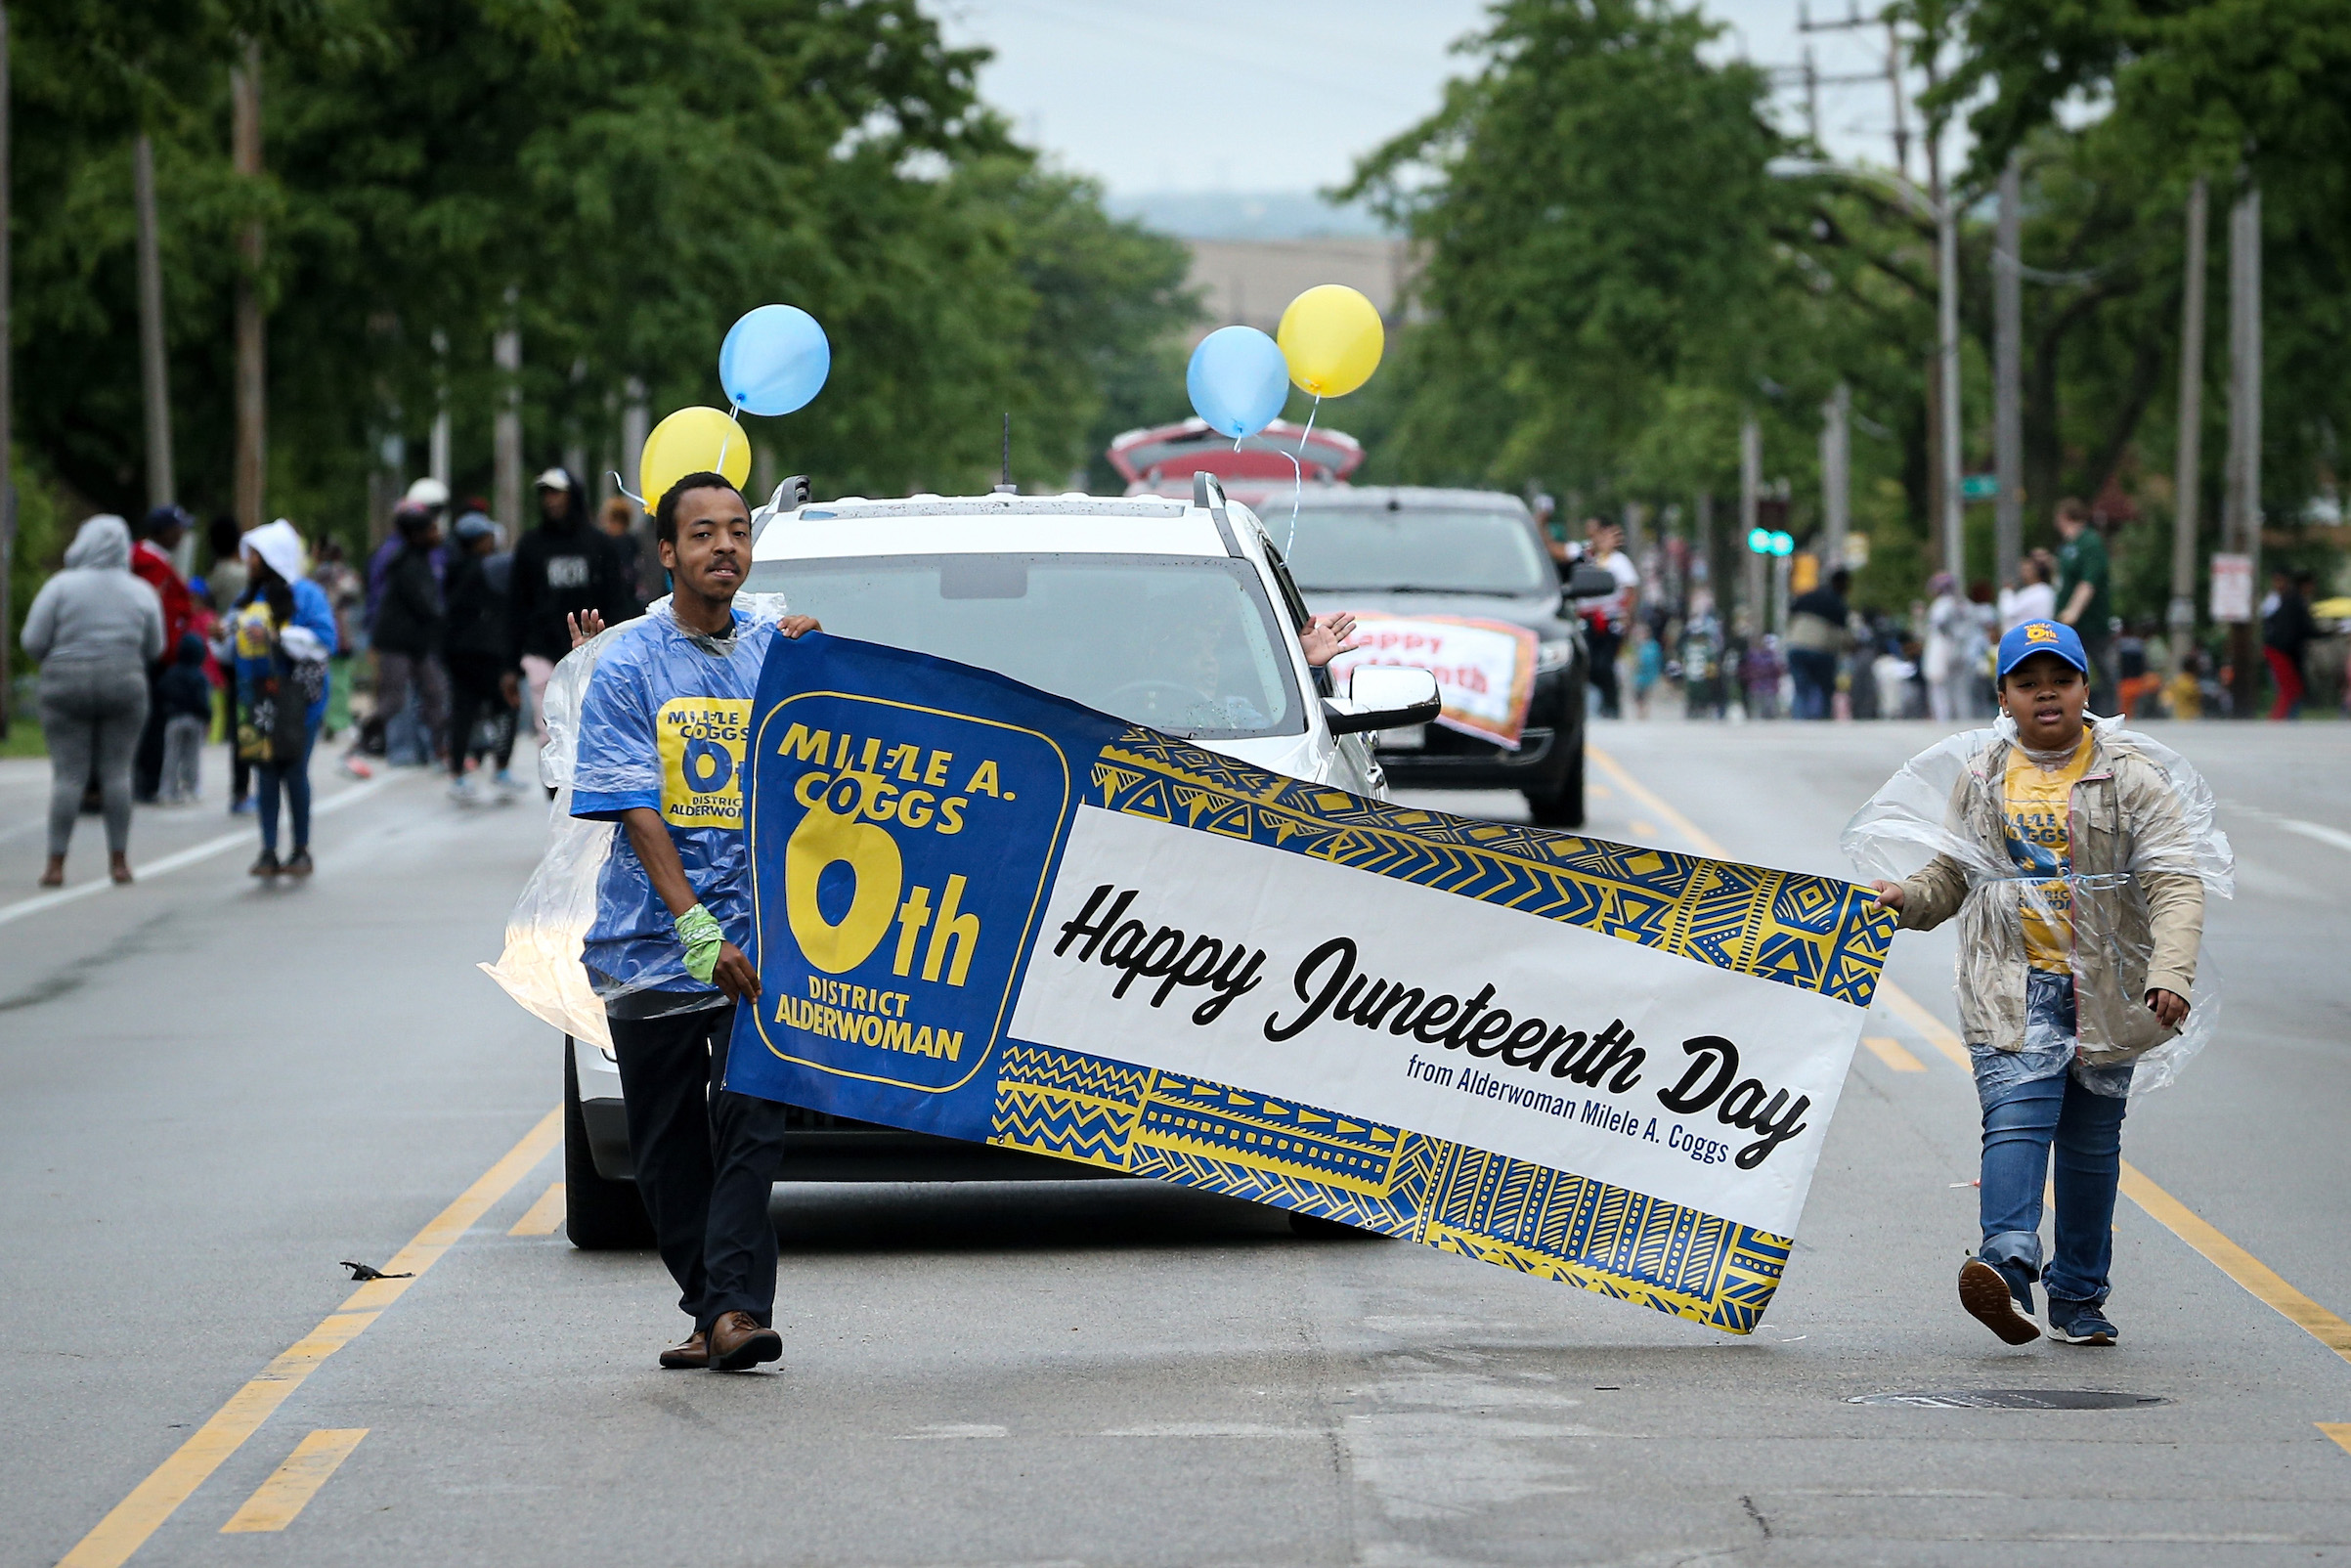 A parade during the 48th Annual Juneteenth Day Festival on June 19, 2019 in Milwaukee